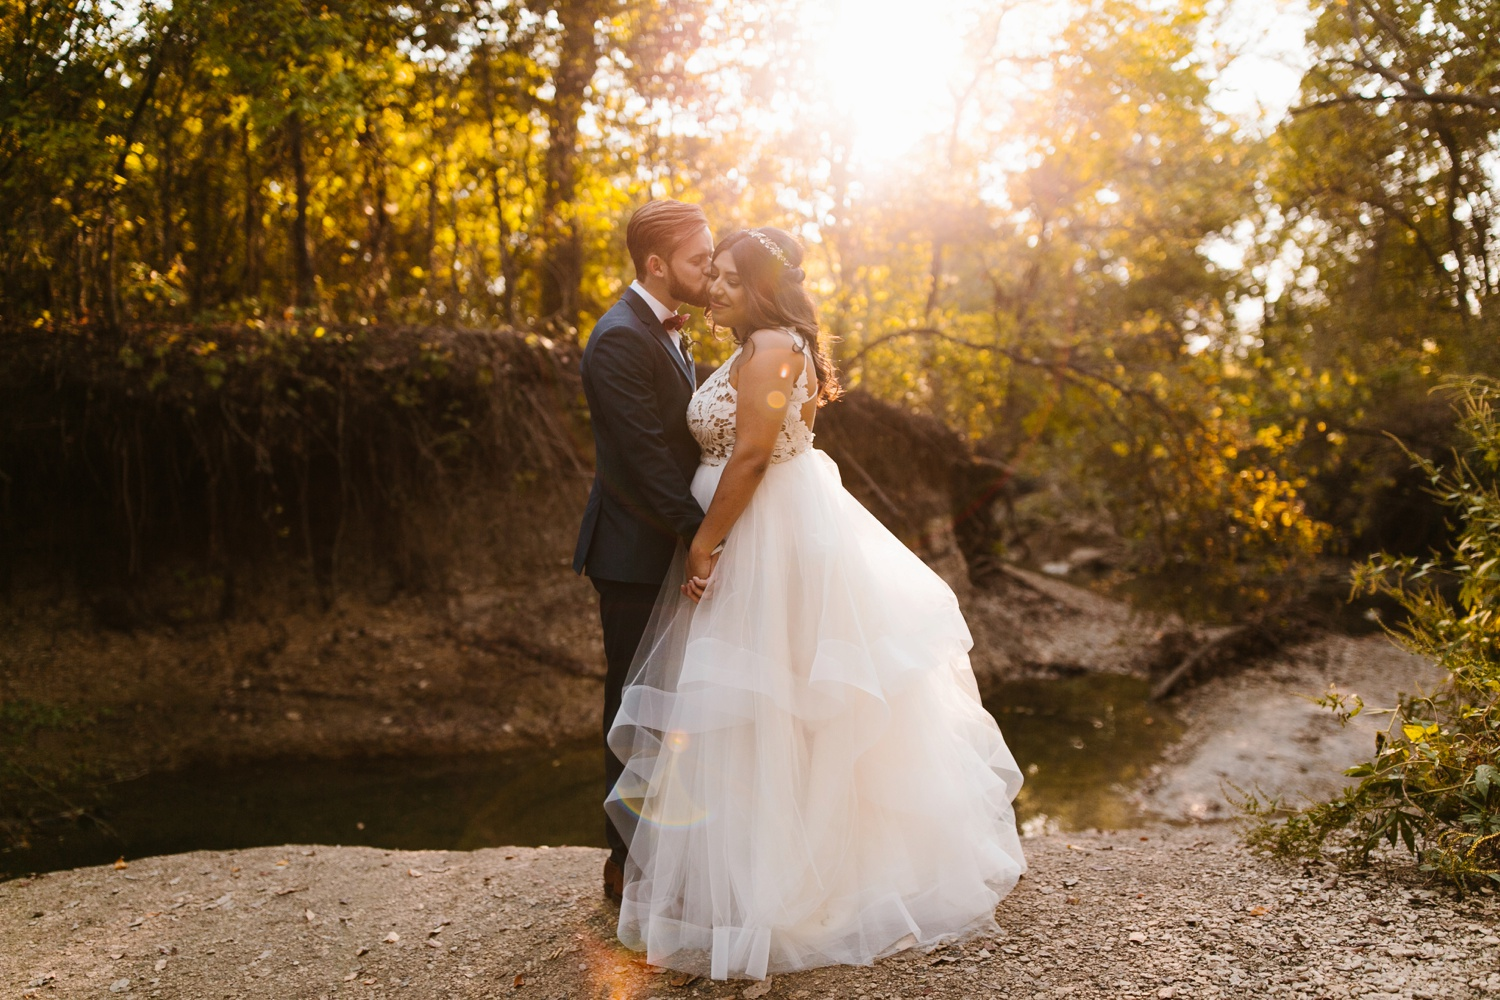 Grant + Lysette | a vibrant, deep burgundy and navy, and mixed metals wedding at Hidden Pines Chapel by North Texas Wedding Photographer Rachel Meagan Photography 204